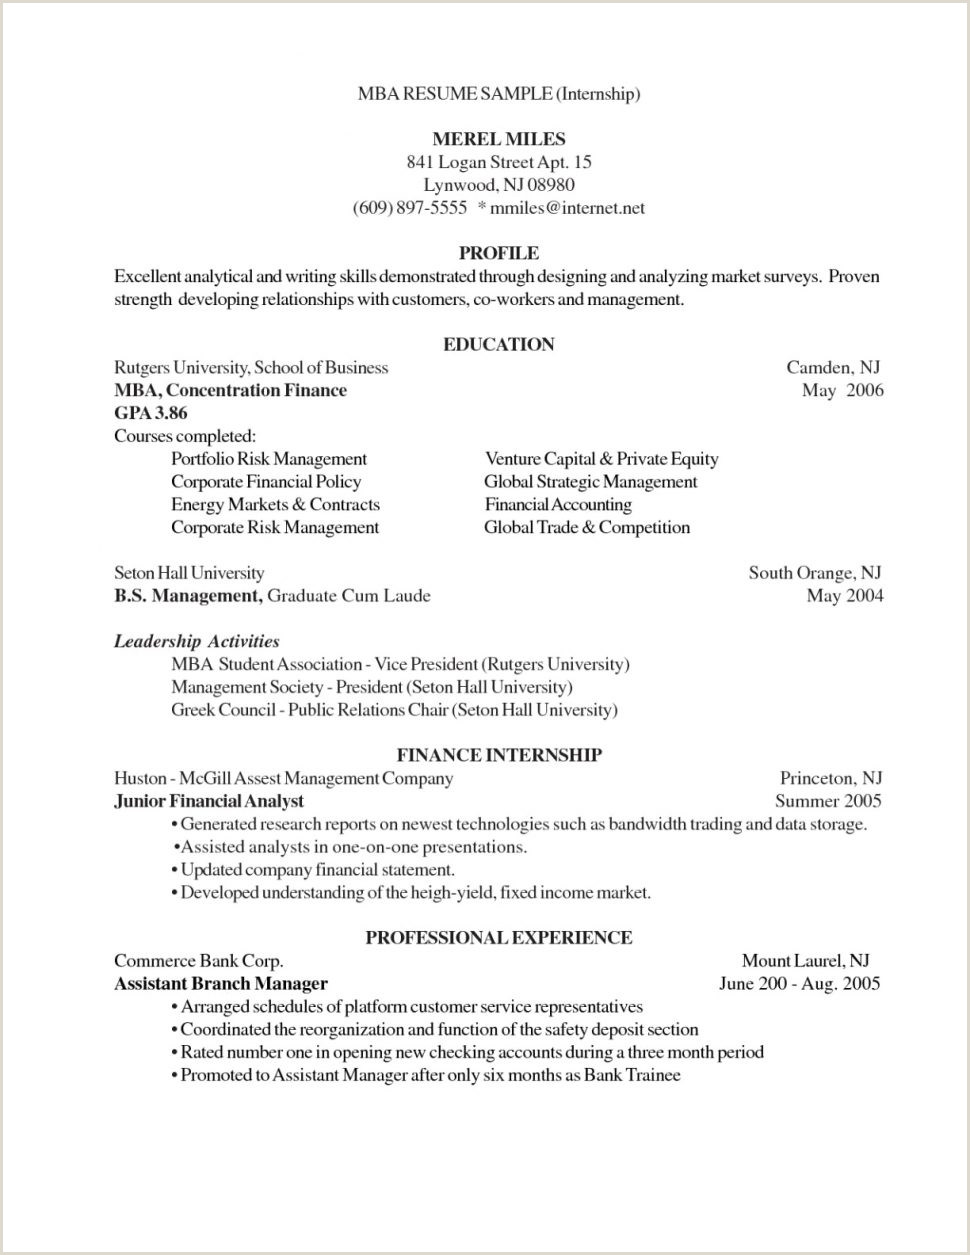 Fresher Resume Mail format Resume Mba Sample Unique Finance for Freshers Luxury Email